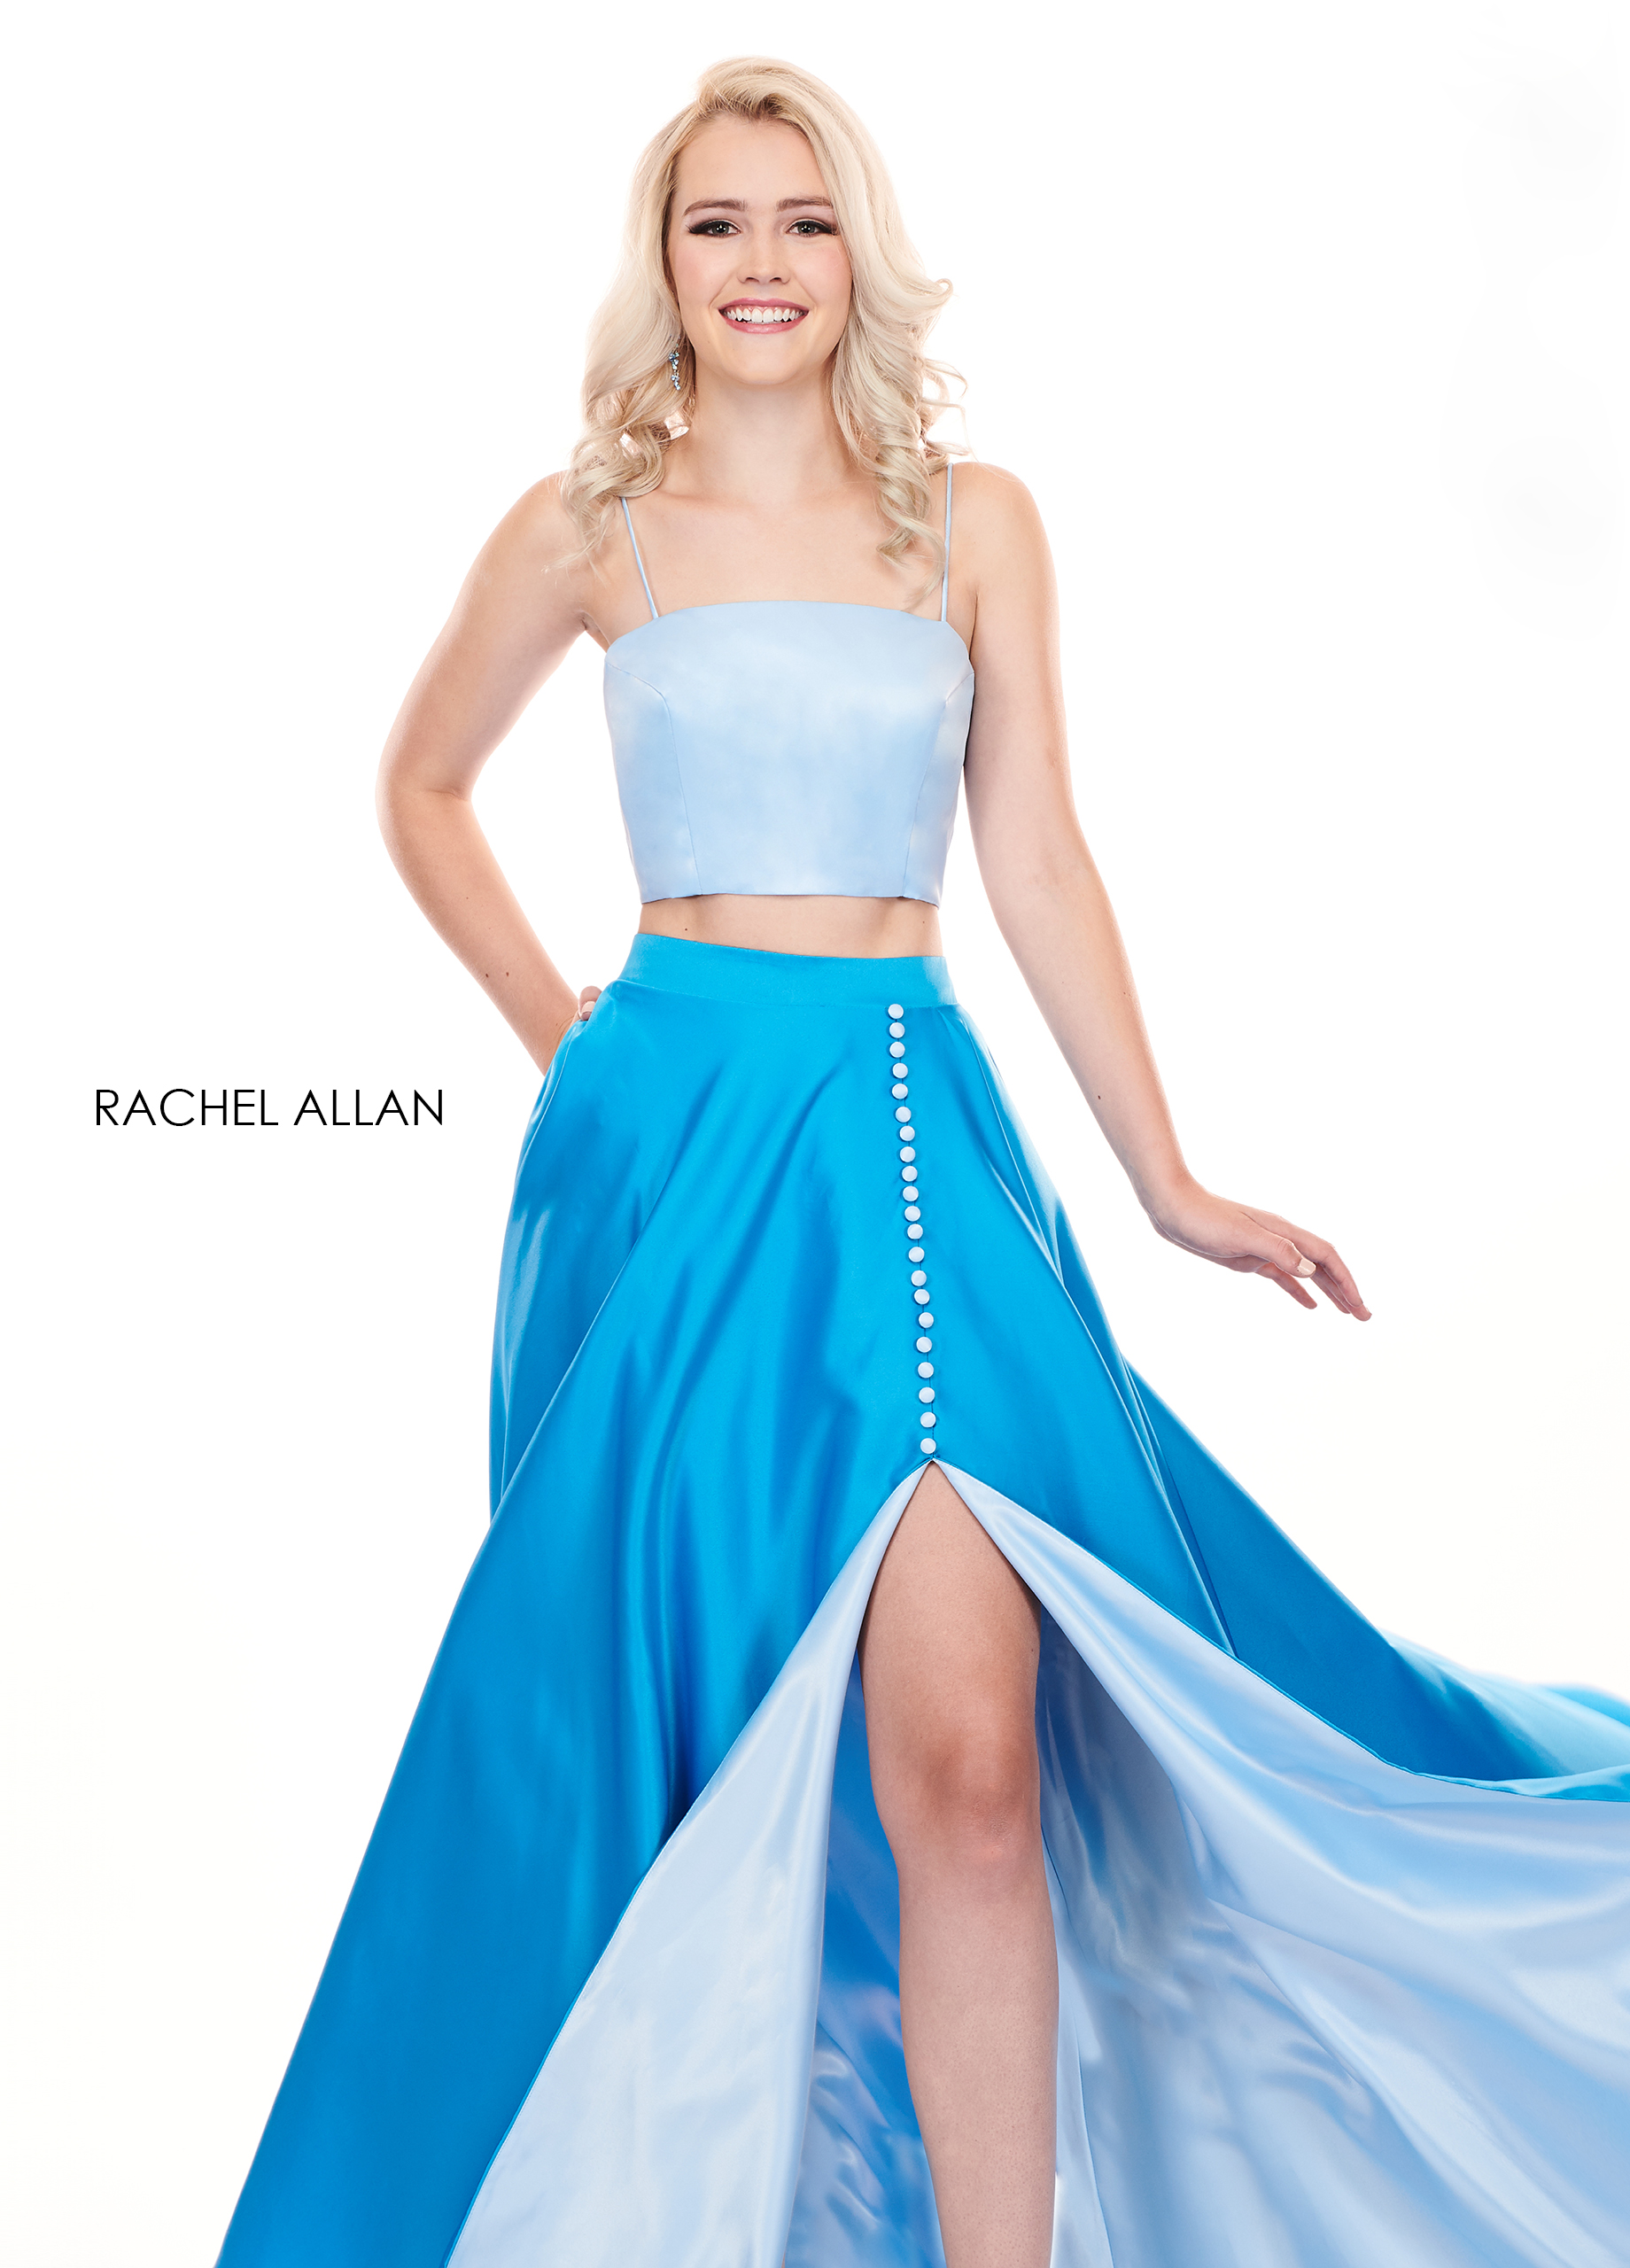 Strappy Two-Piece Prom Dresses in Blue Color